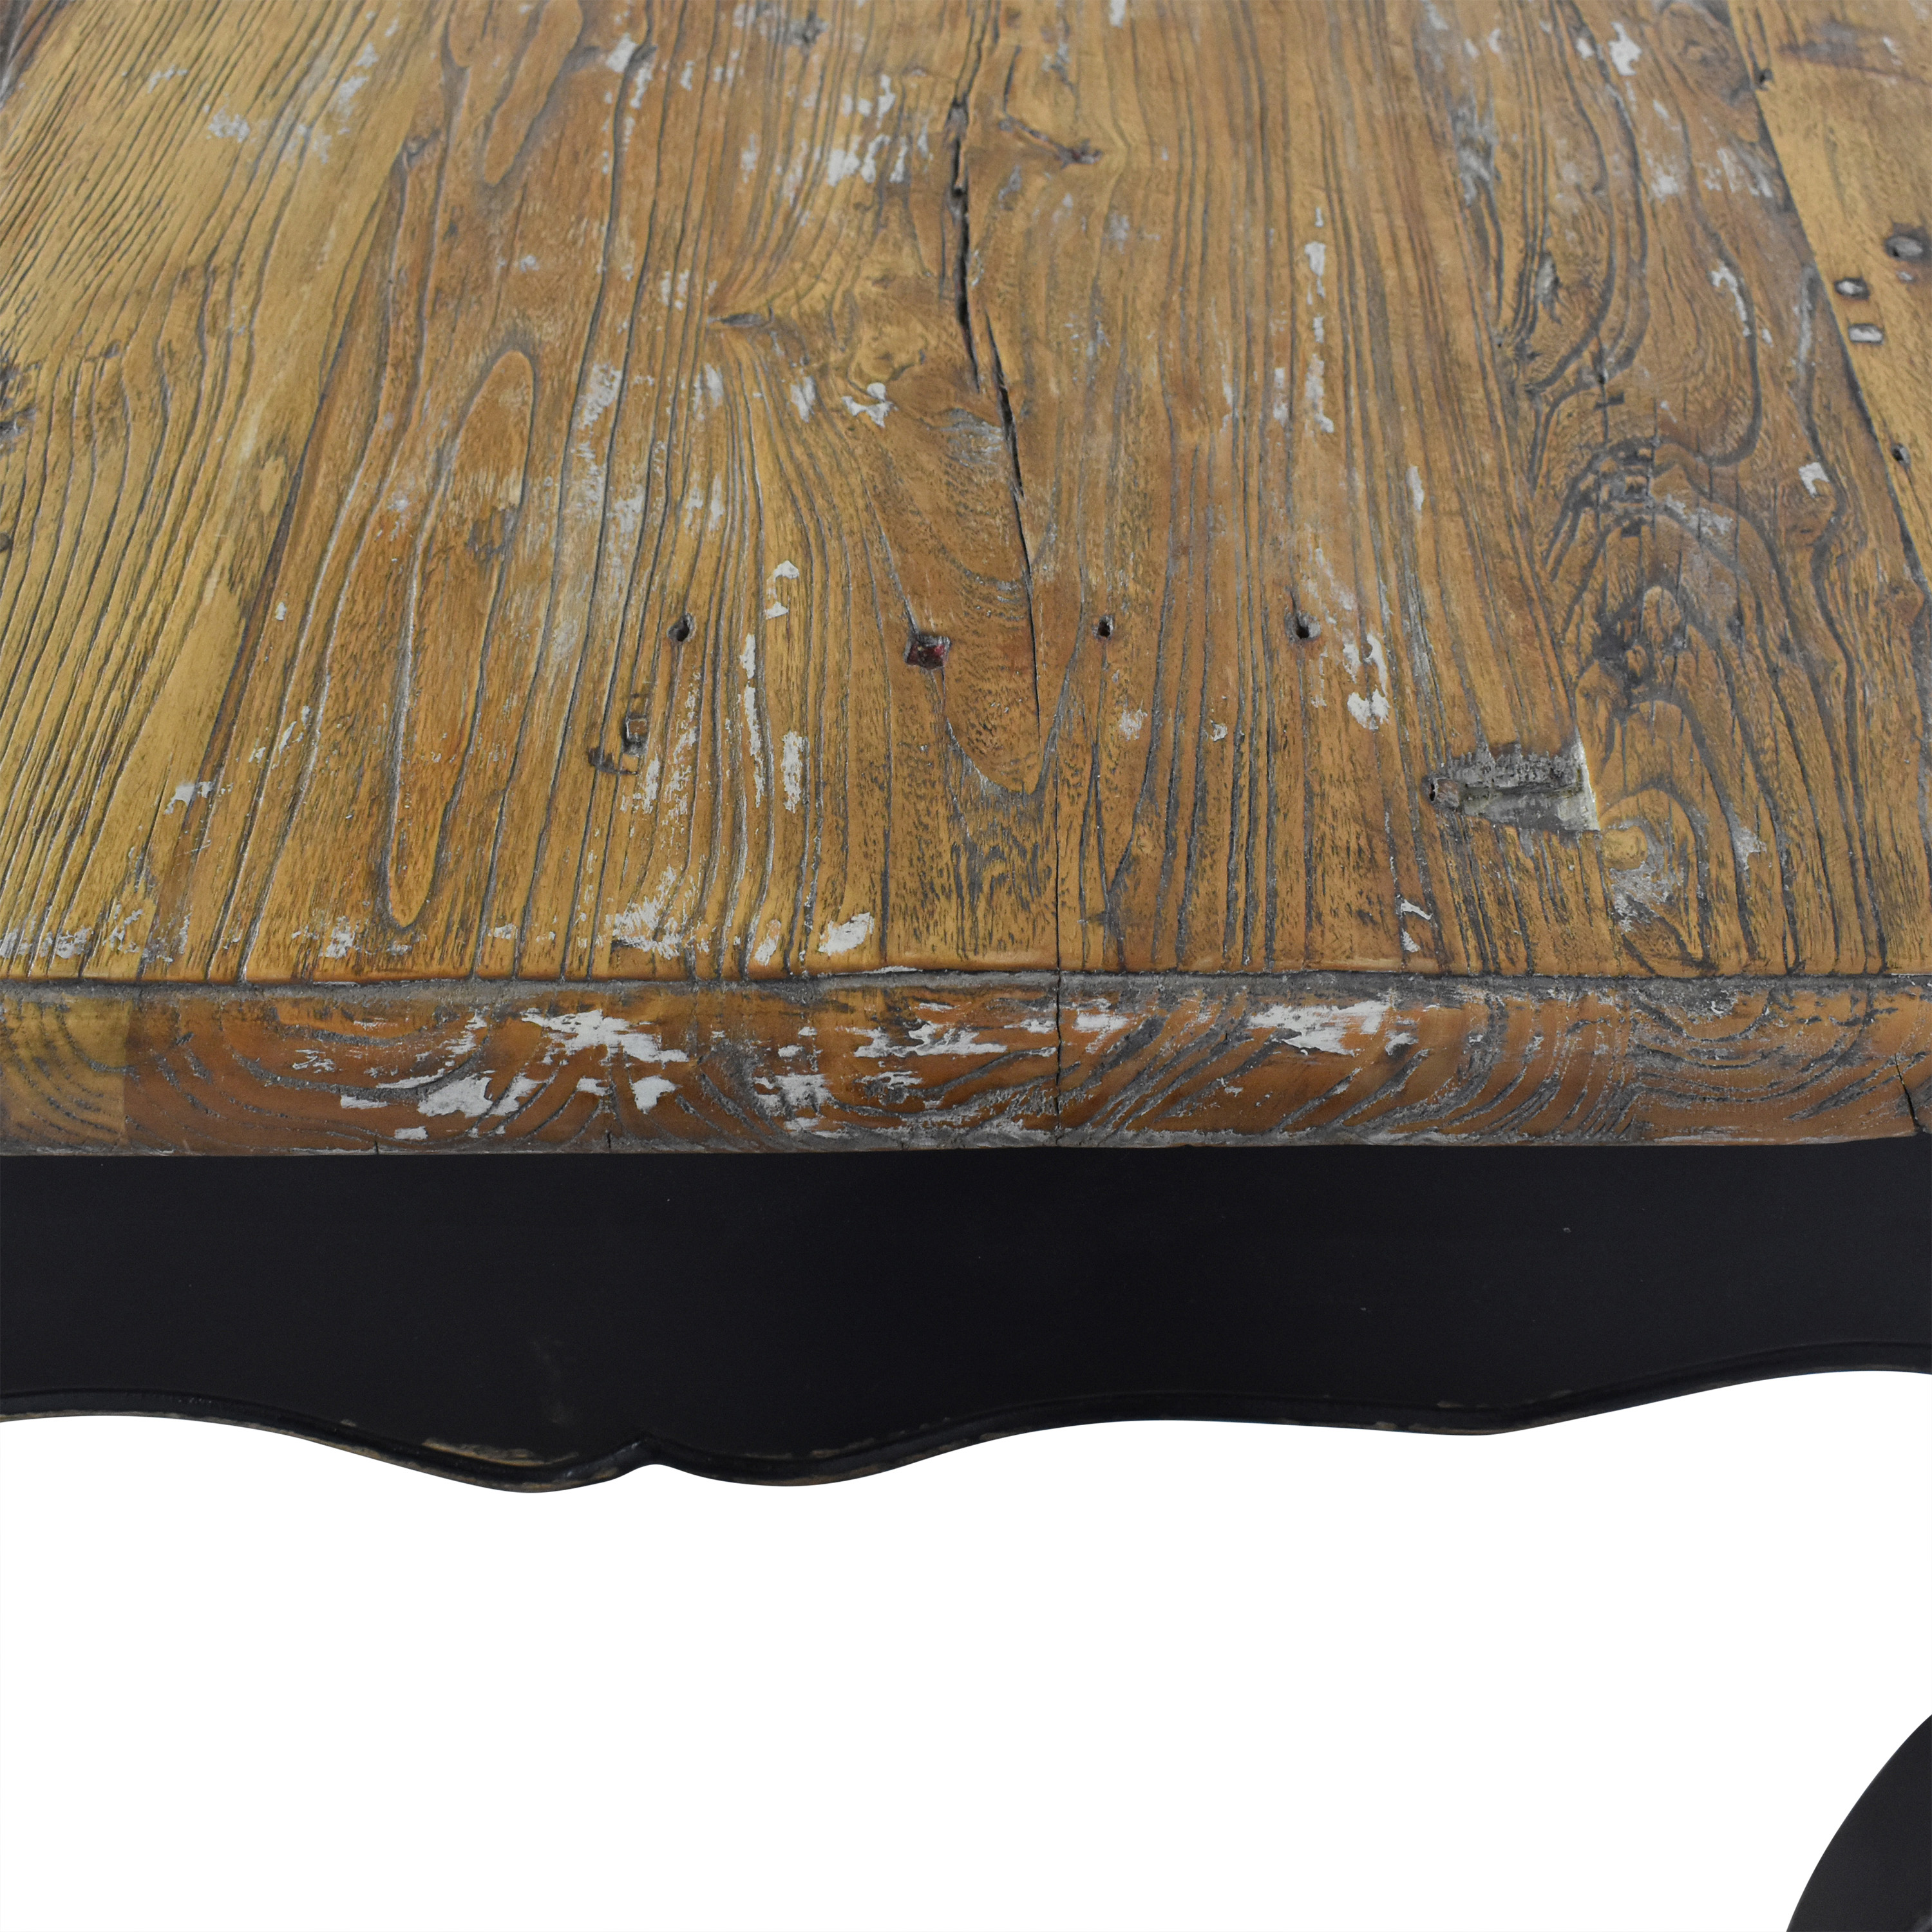 ABC Carpet & Home ABC Carpet & Home Rustic Dining Table Tables